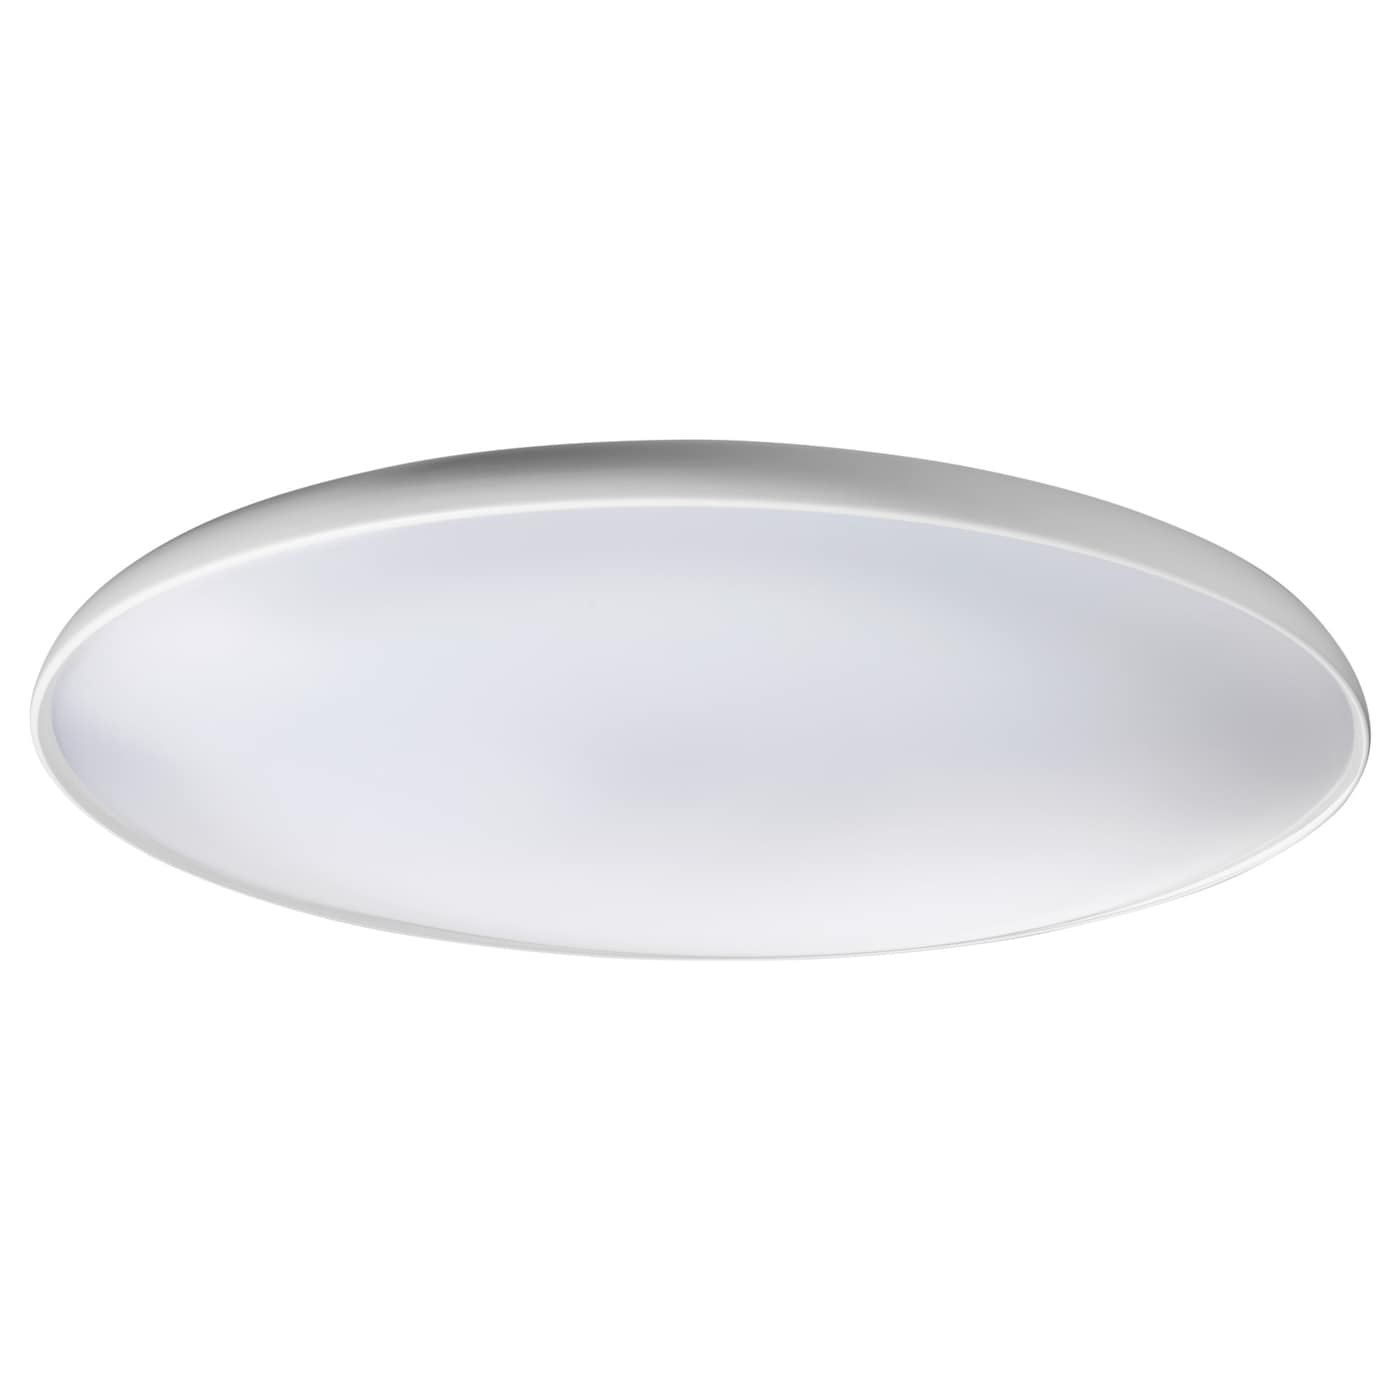 Are Led Ceiling Lights Any Good : Nym?ne led ceiling lamp white ikea